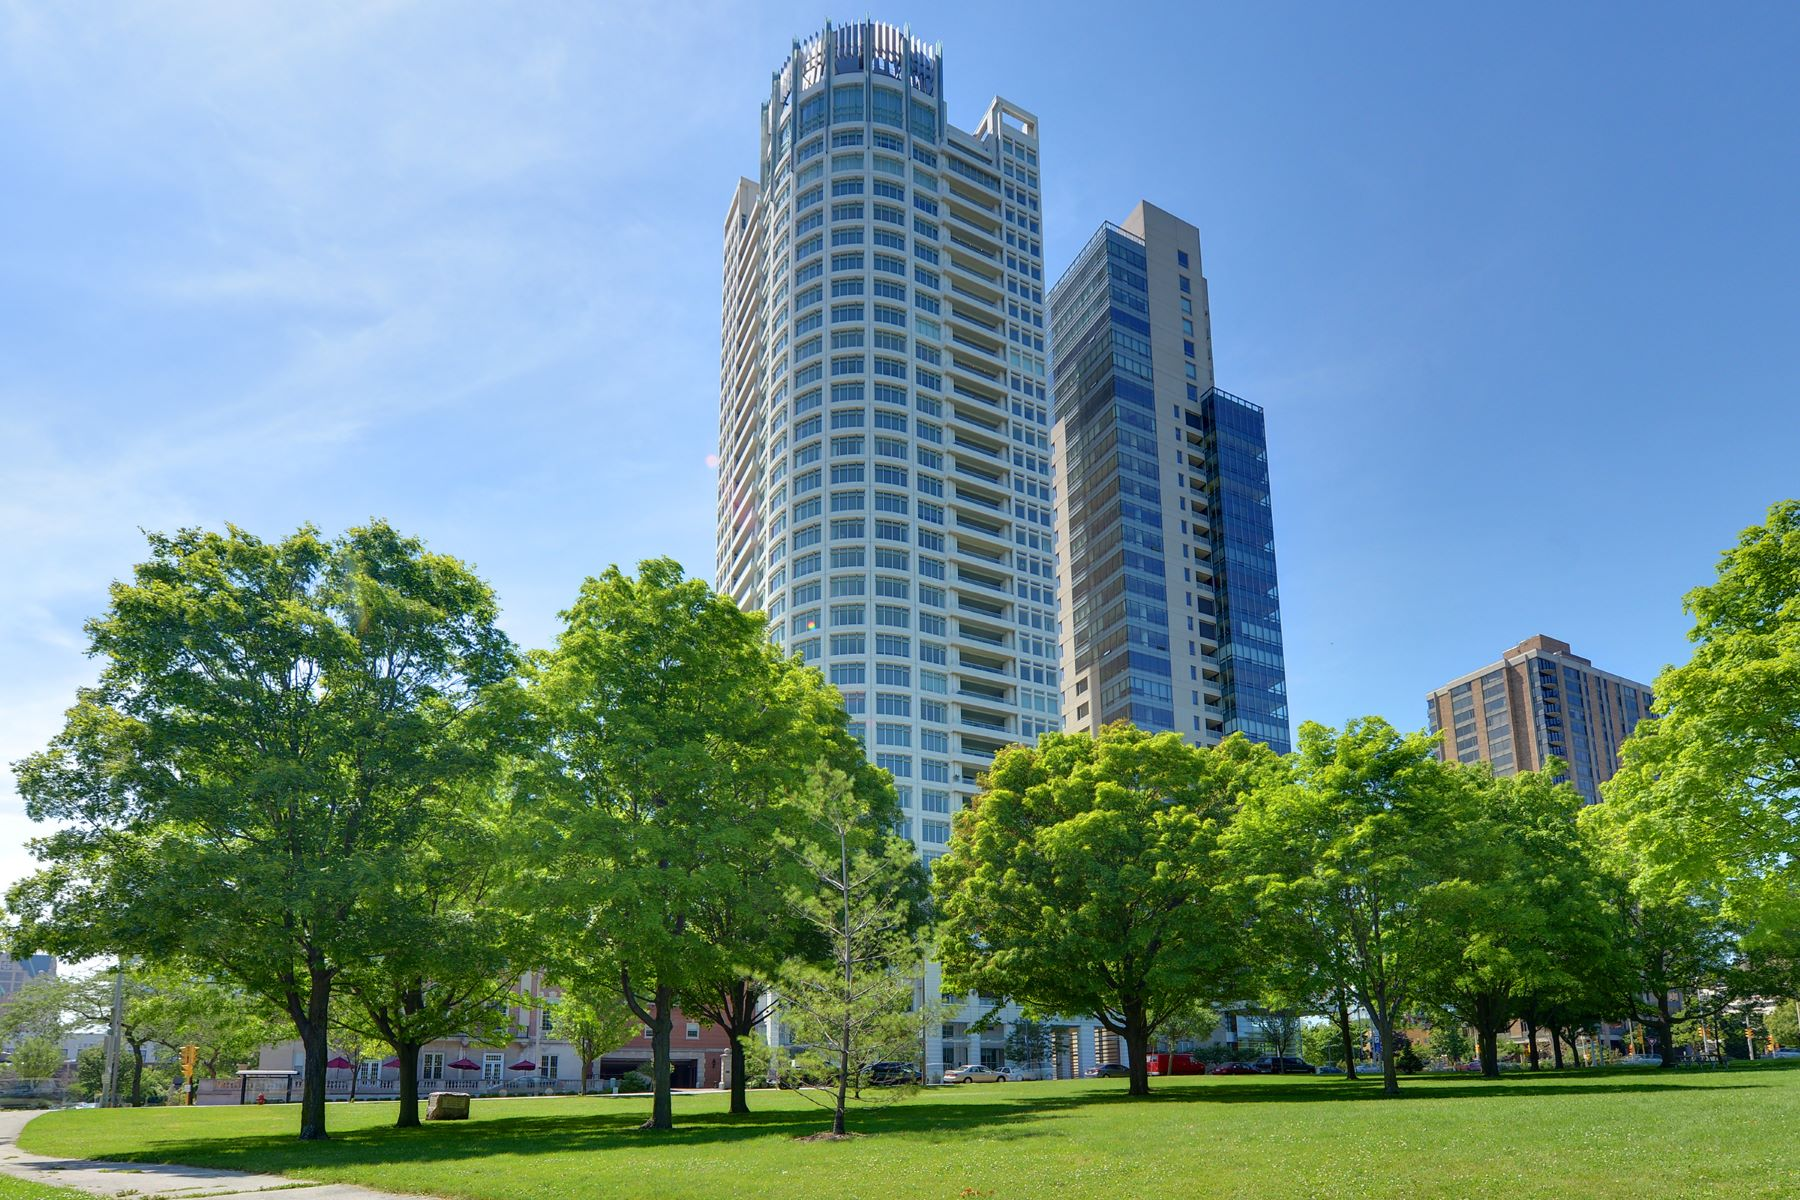 Condominium for Sale at University Club Tower 825 N. Prospect Avenue #1601 Milwaukee, Wisconsin 53202 United States